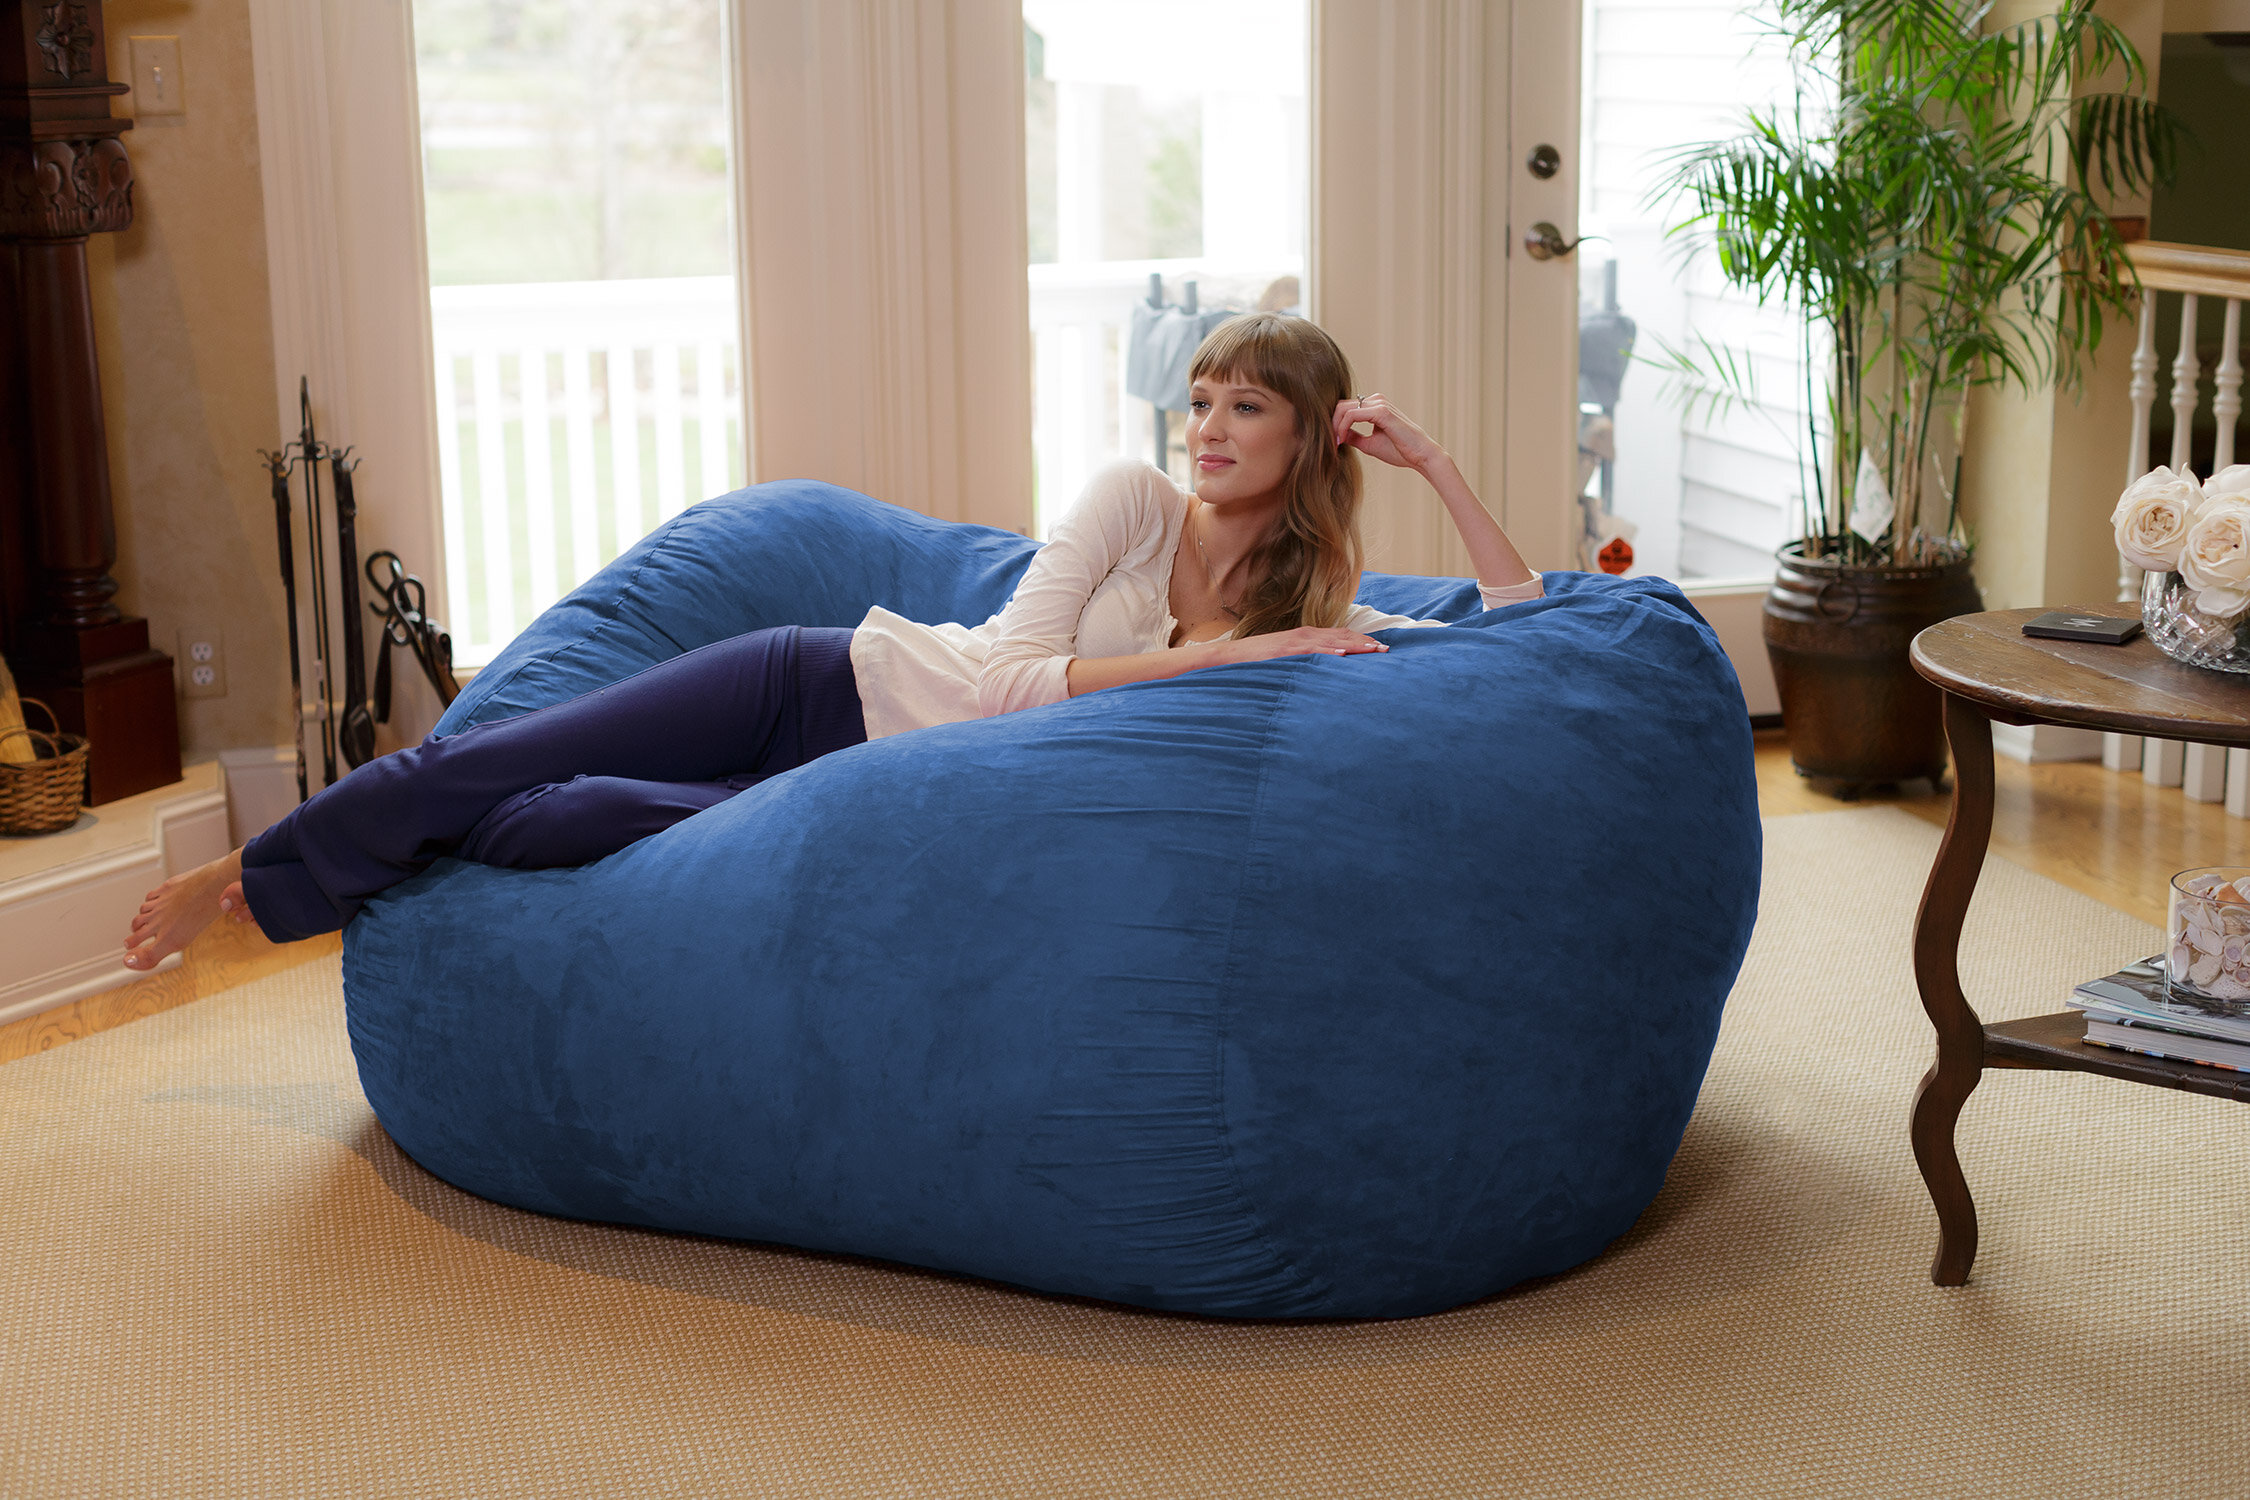 Excellent Extra Large Bean Bag Chair Unemploymentrelief Wooden Chair Designs For Living Room Unemploymentrelieforg